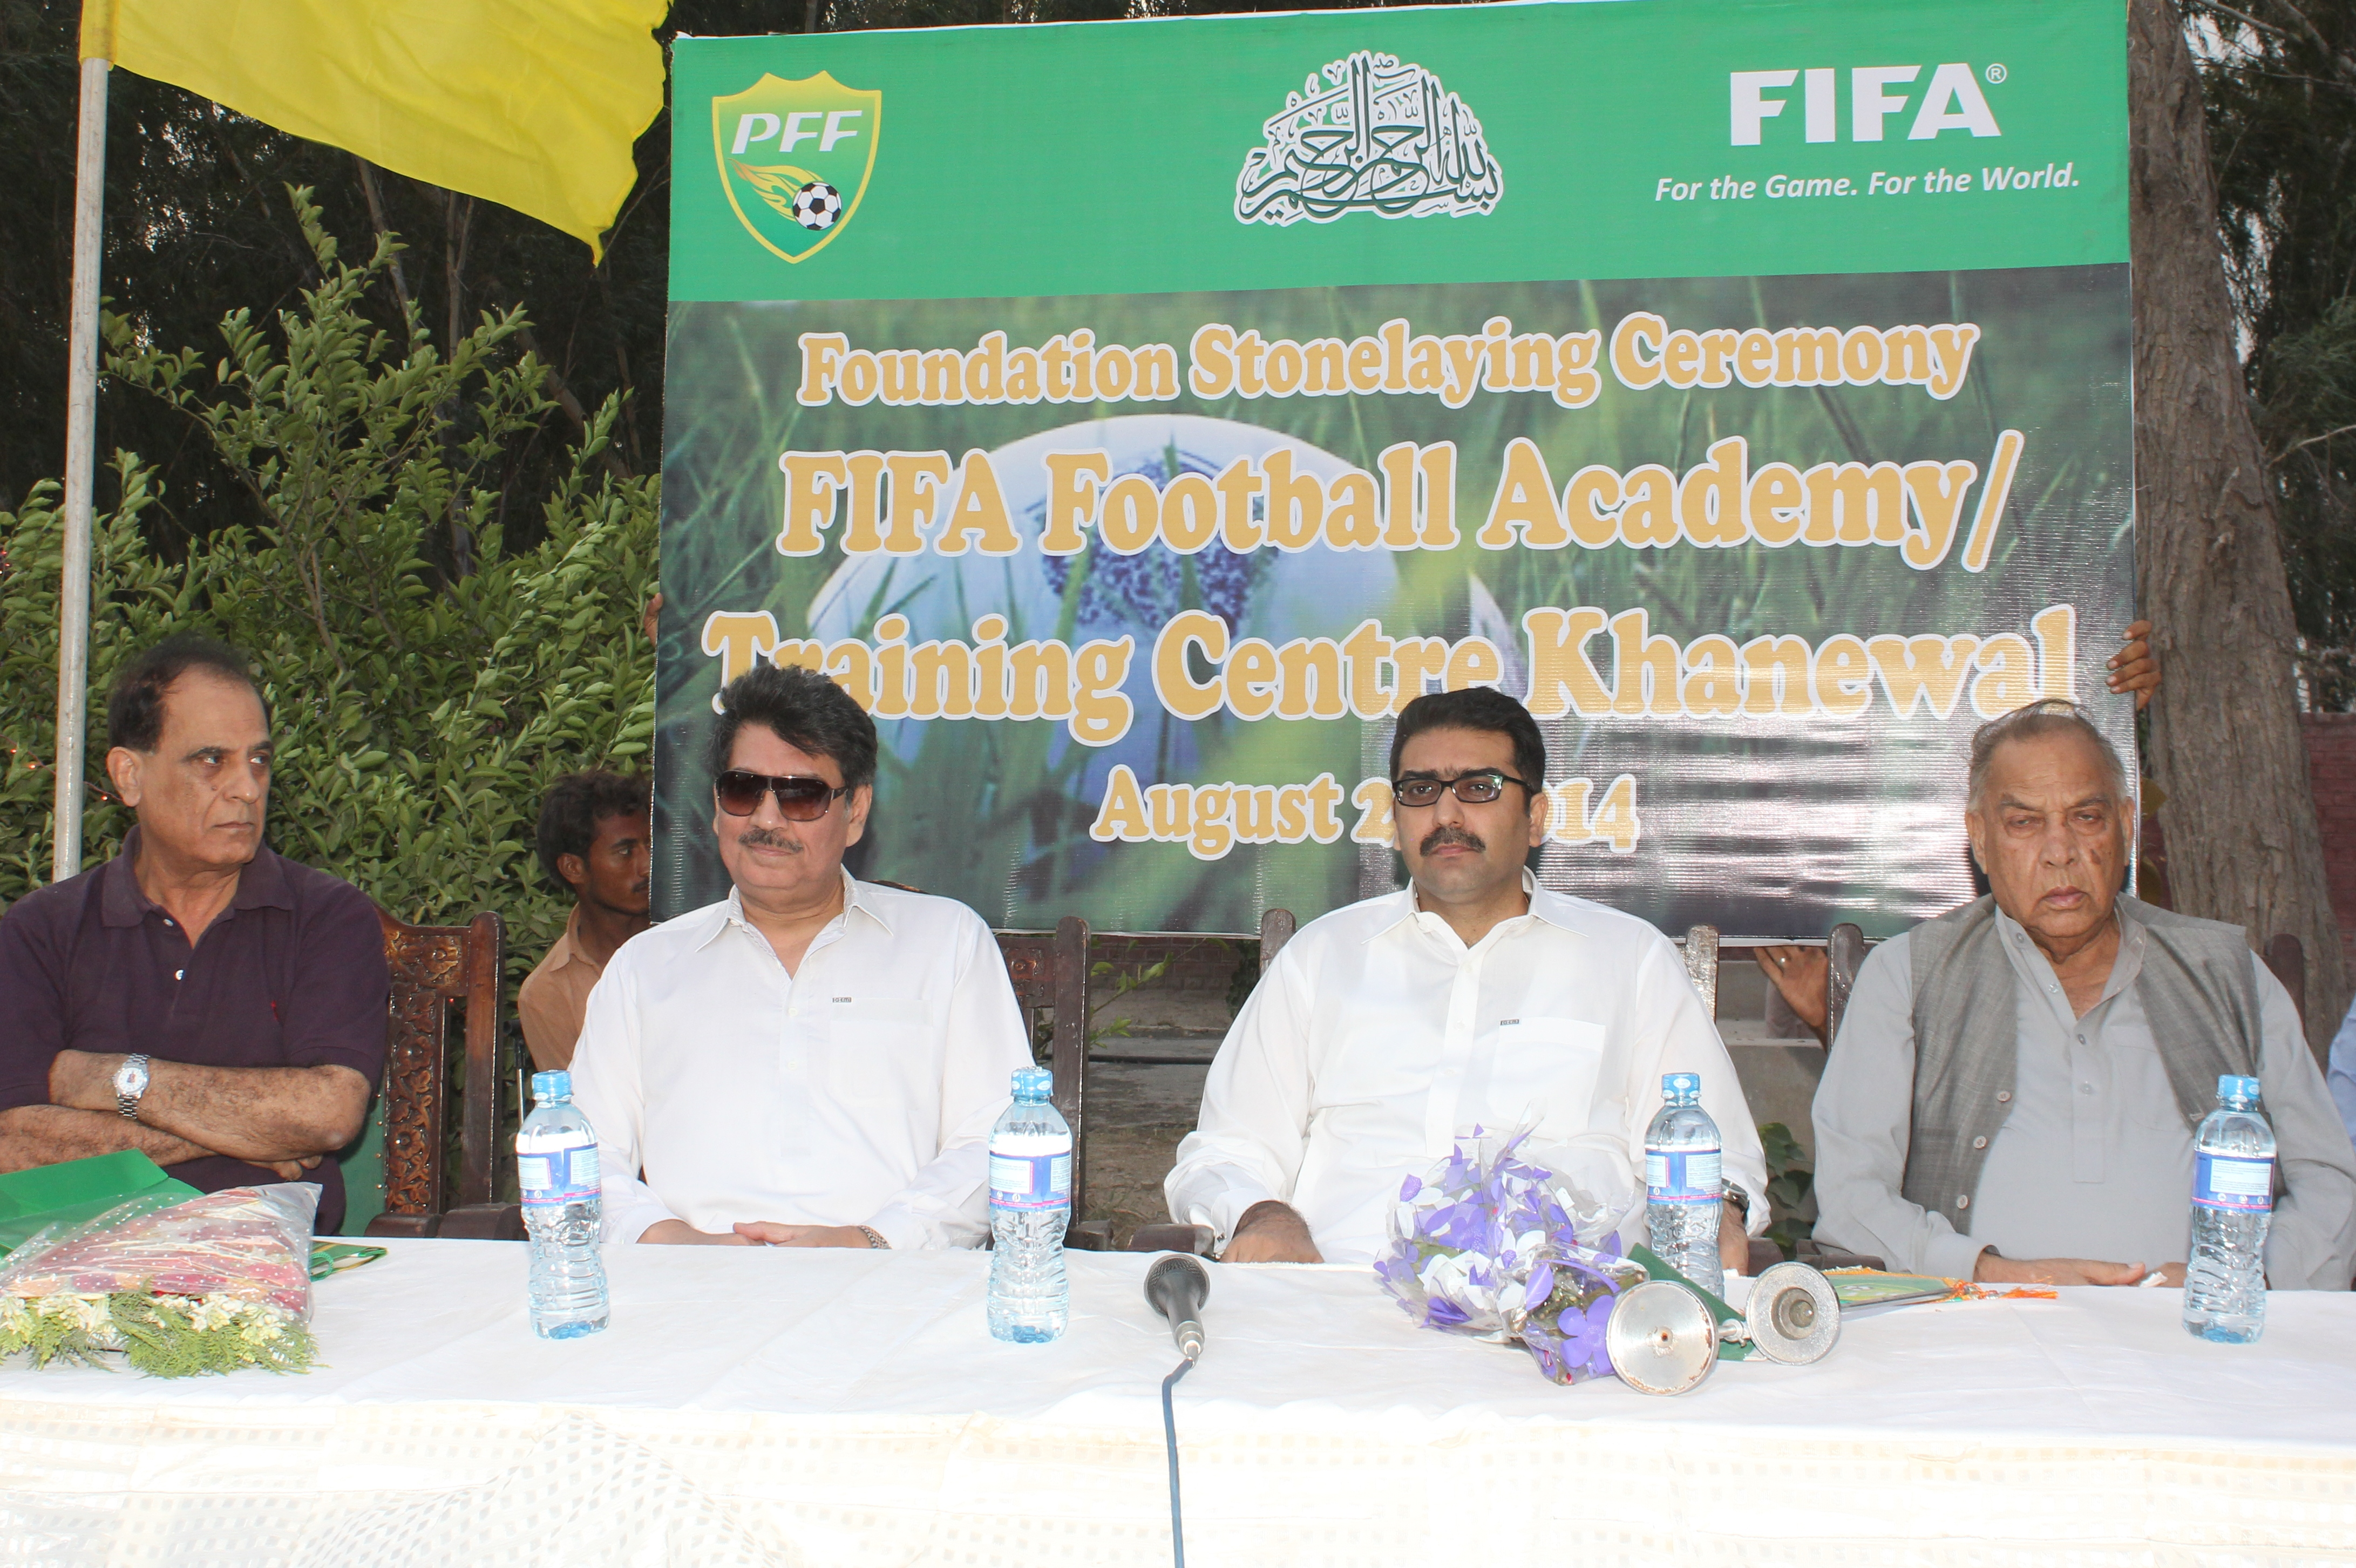 PFF launch FIFA Academy and Training centre in Khanewal